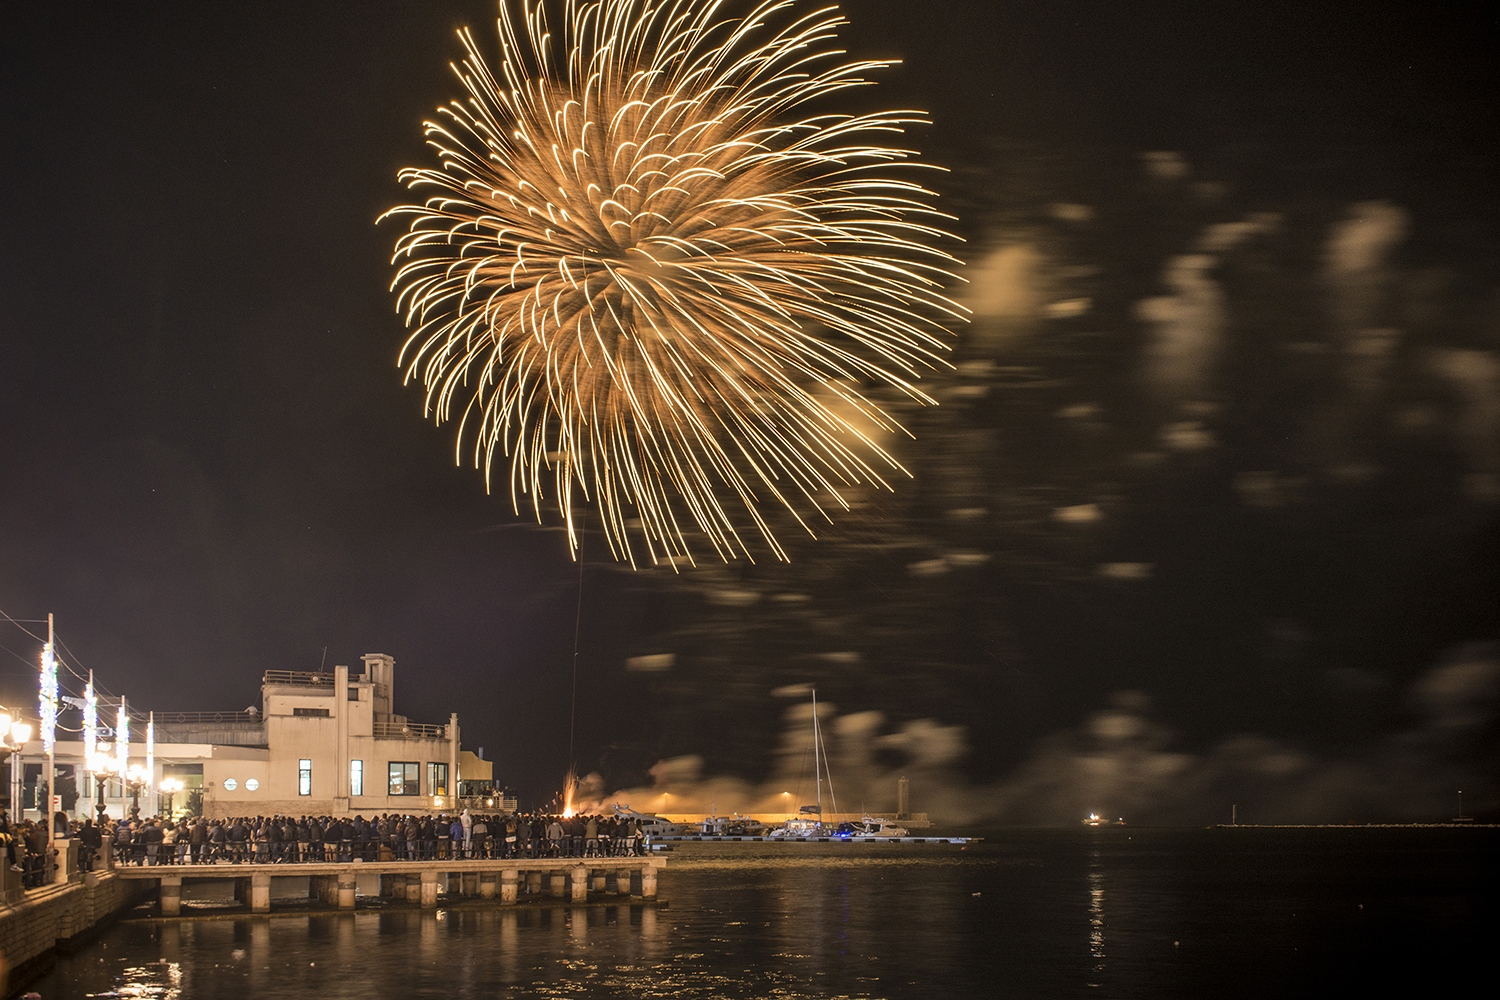 Fireworks for S.Nicola